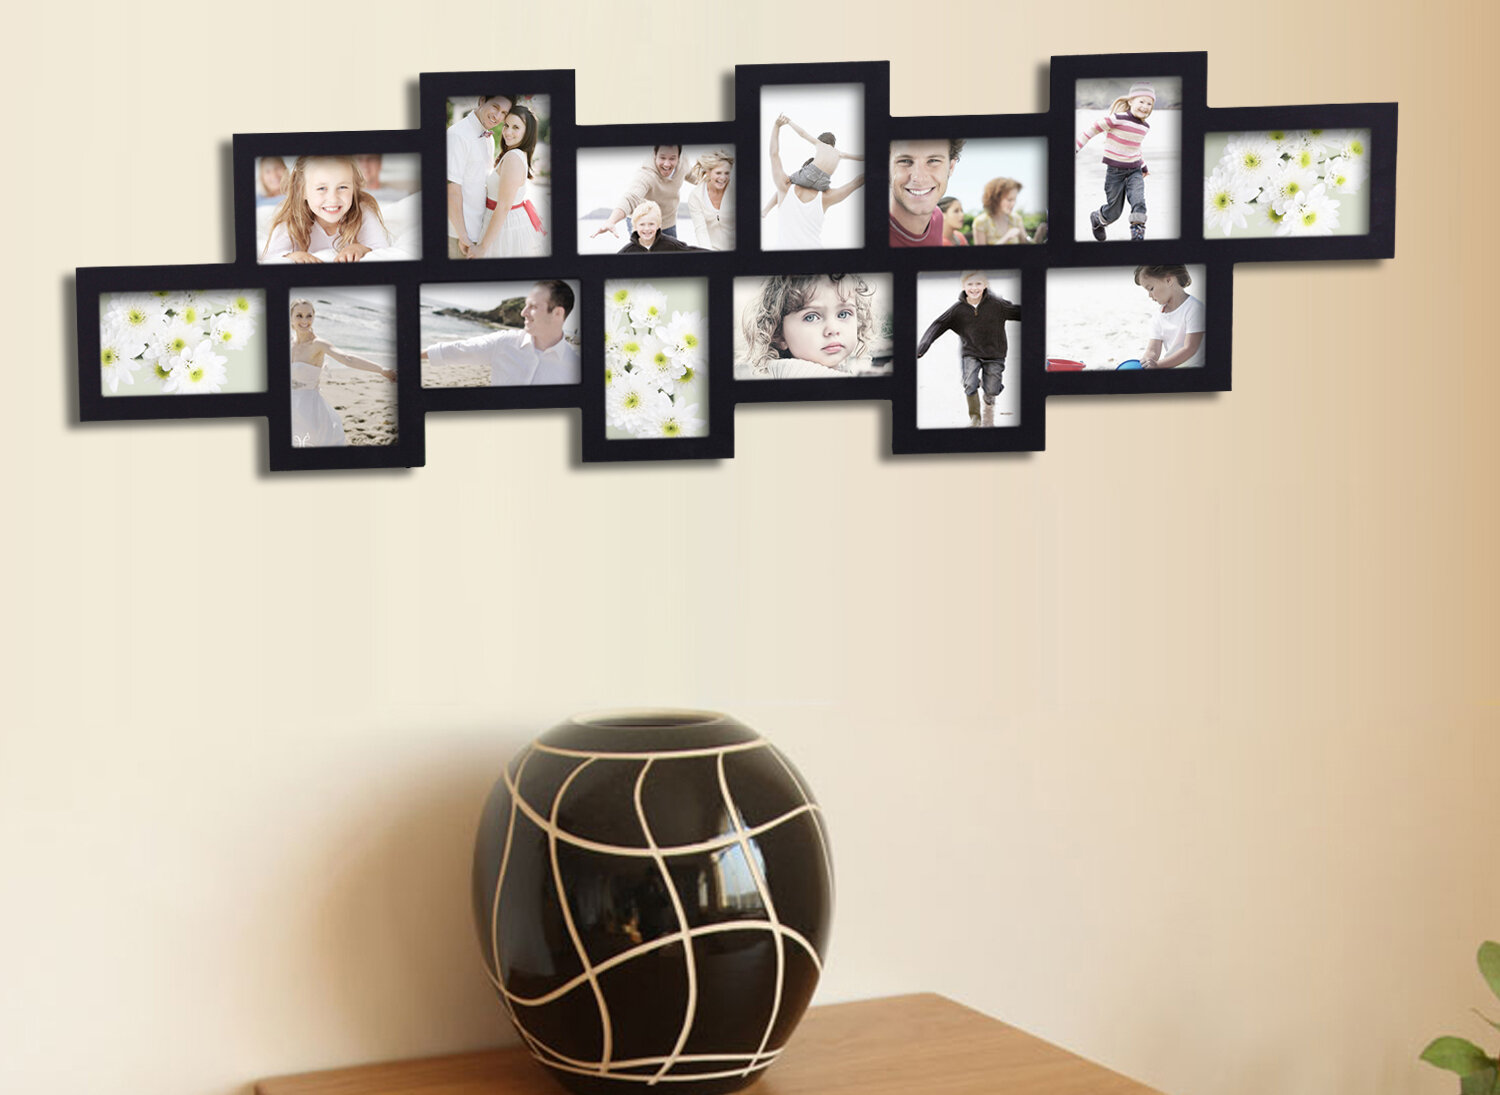 Adecotrading 14 Opening Decorative Wall Hanging Collage Picture Frame Reviews Wayfair